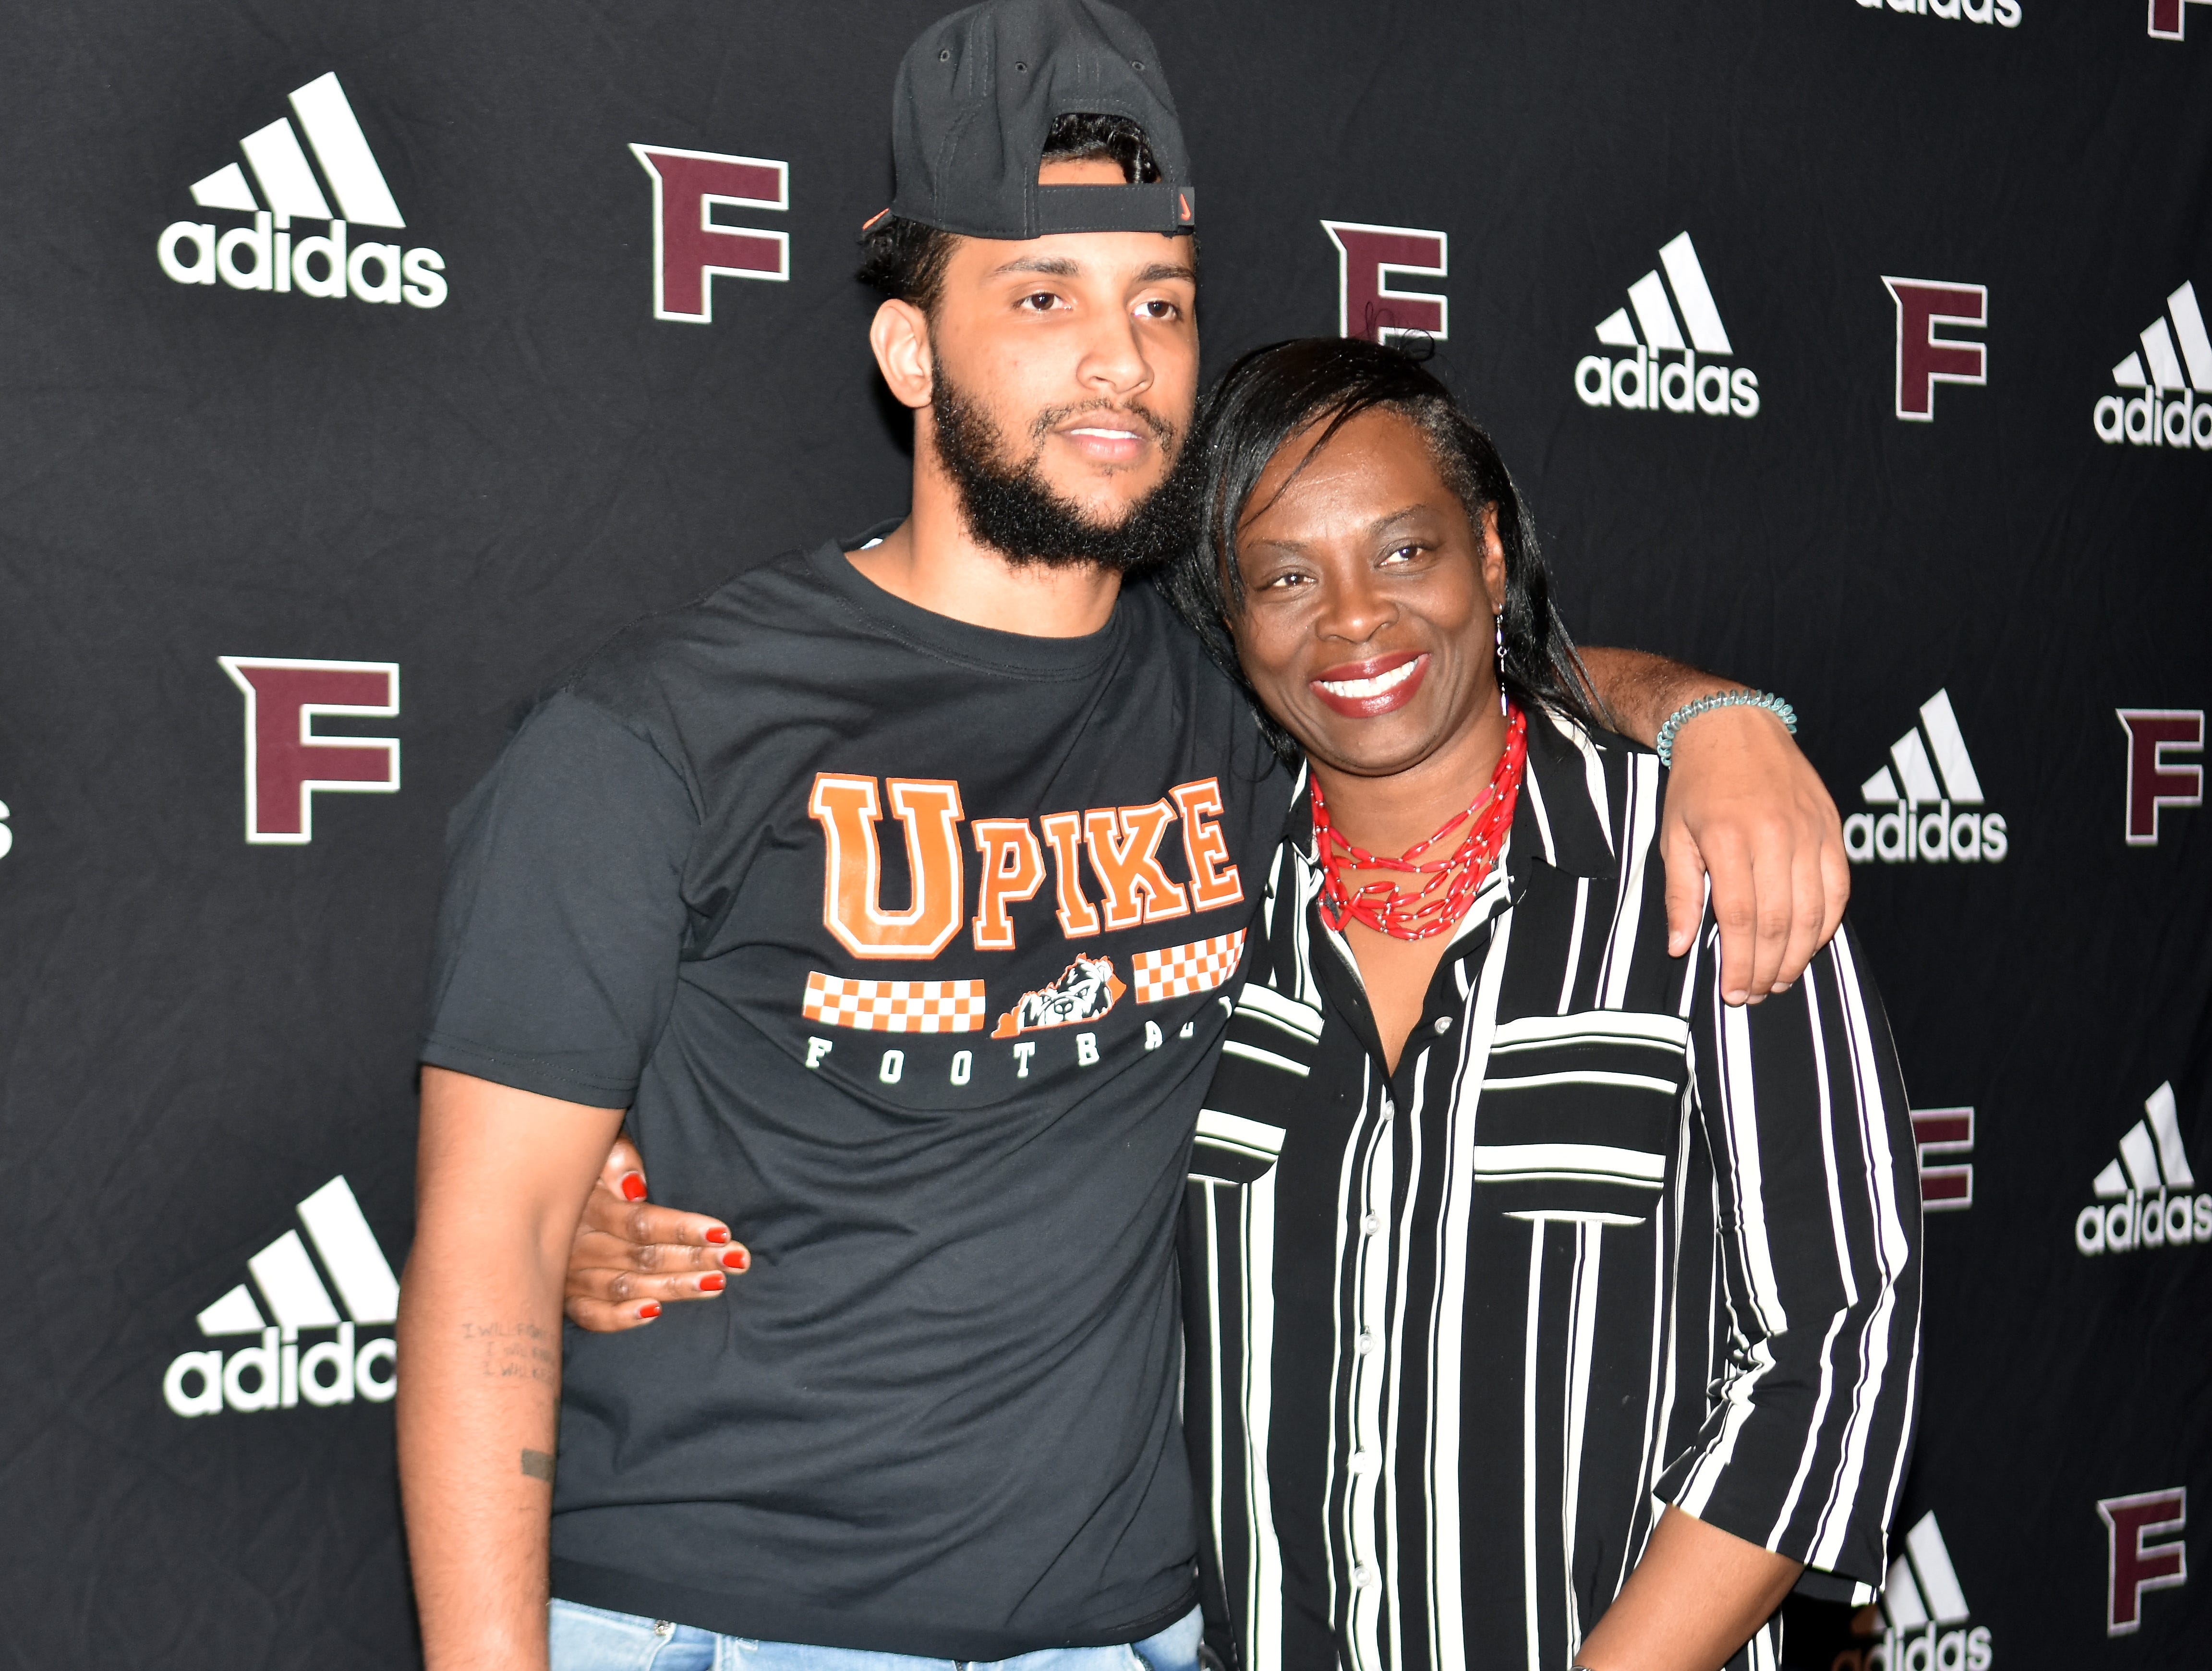 Xavier Malone from Fulton High signed to play football at University of Pikeville on National Signing Day, Wednesday, February 6, 2019.